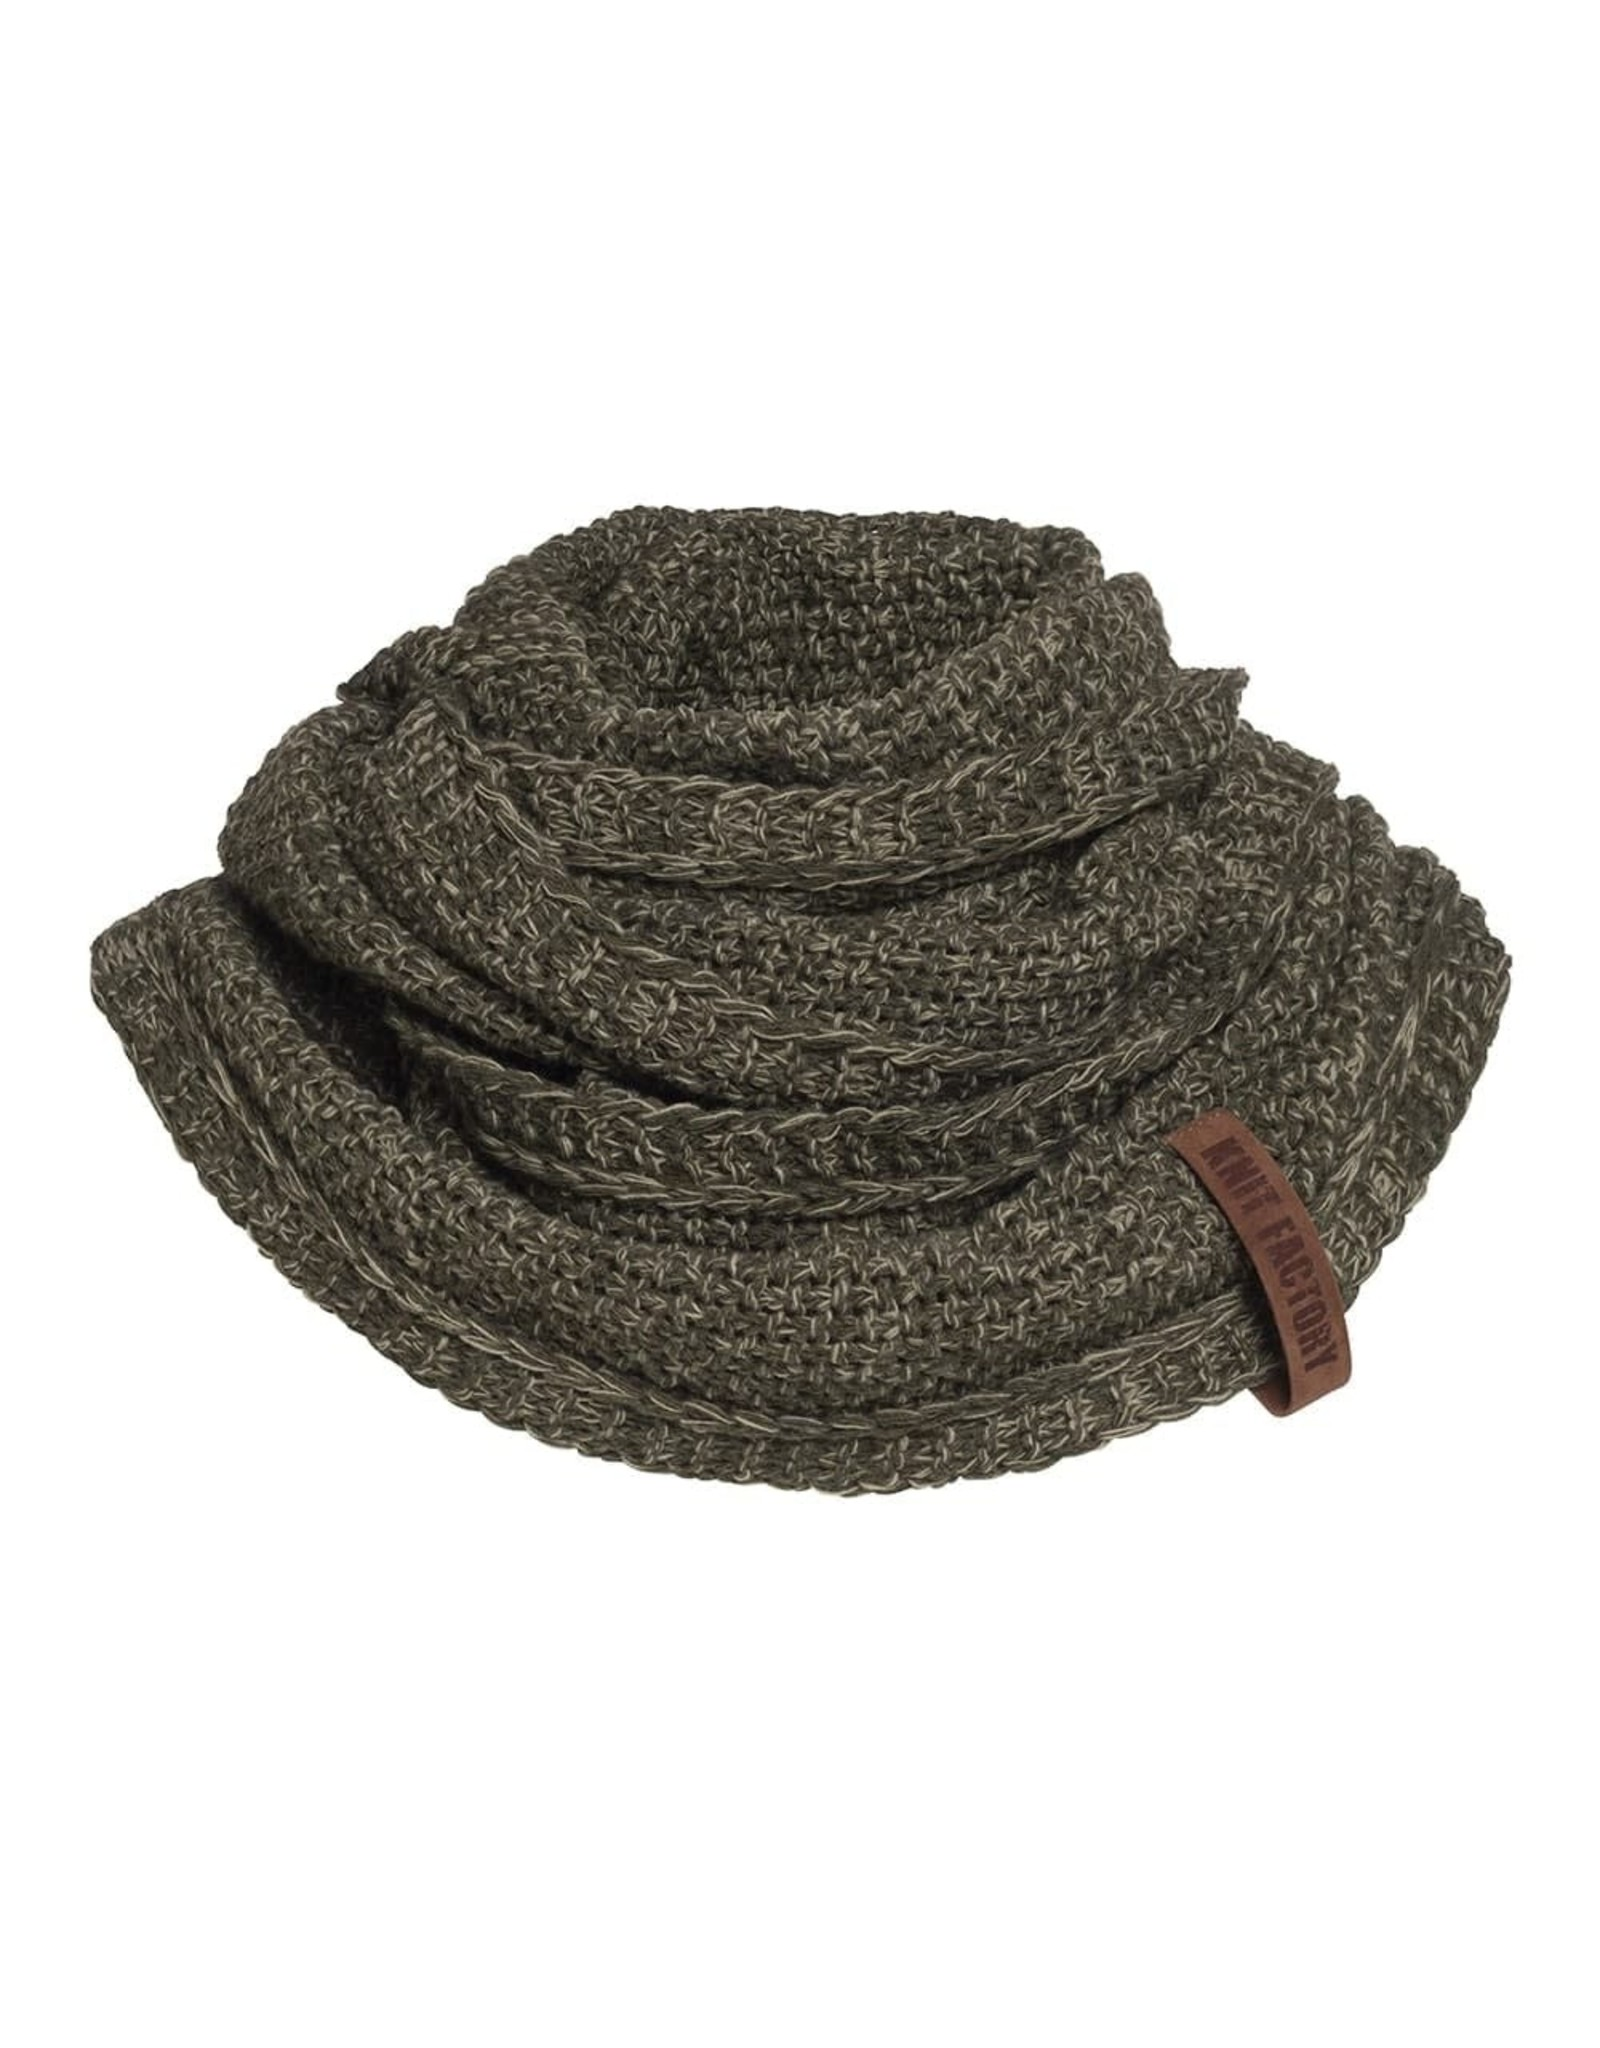 Knit Factory Knit Factory 1206644 Coco Infinity Scarf Green/Olive